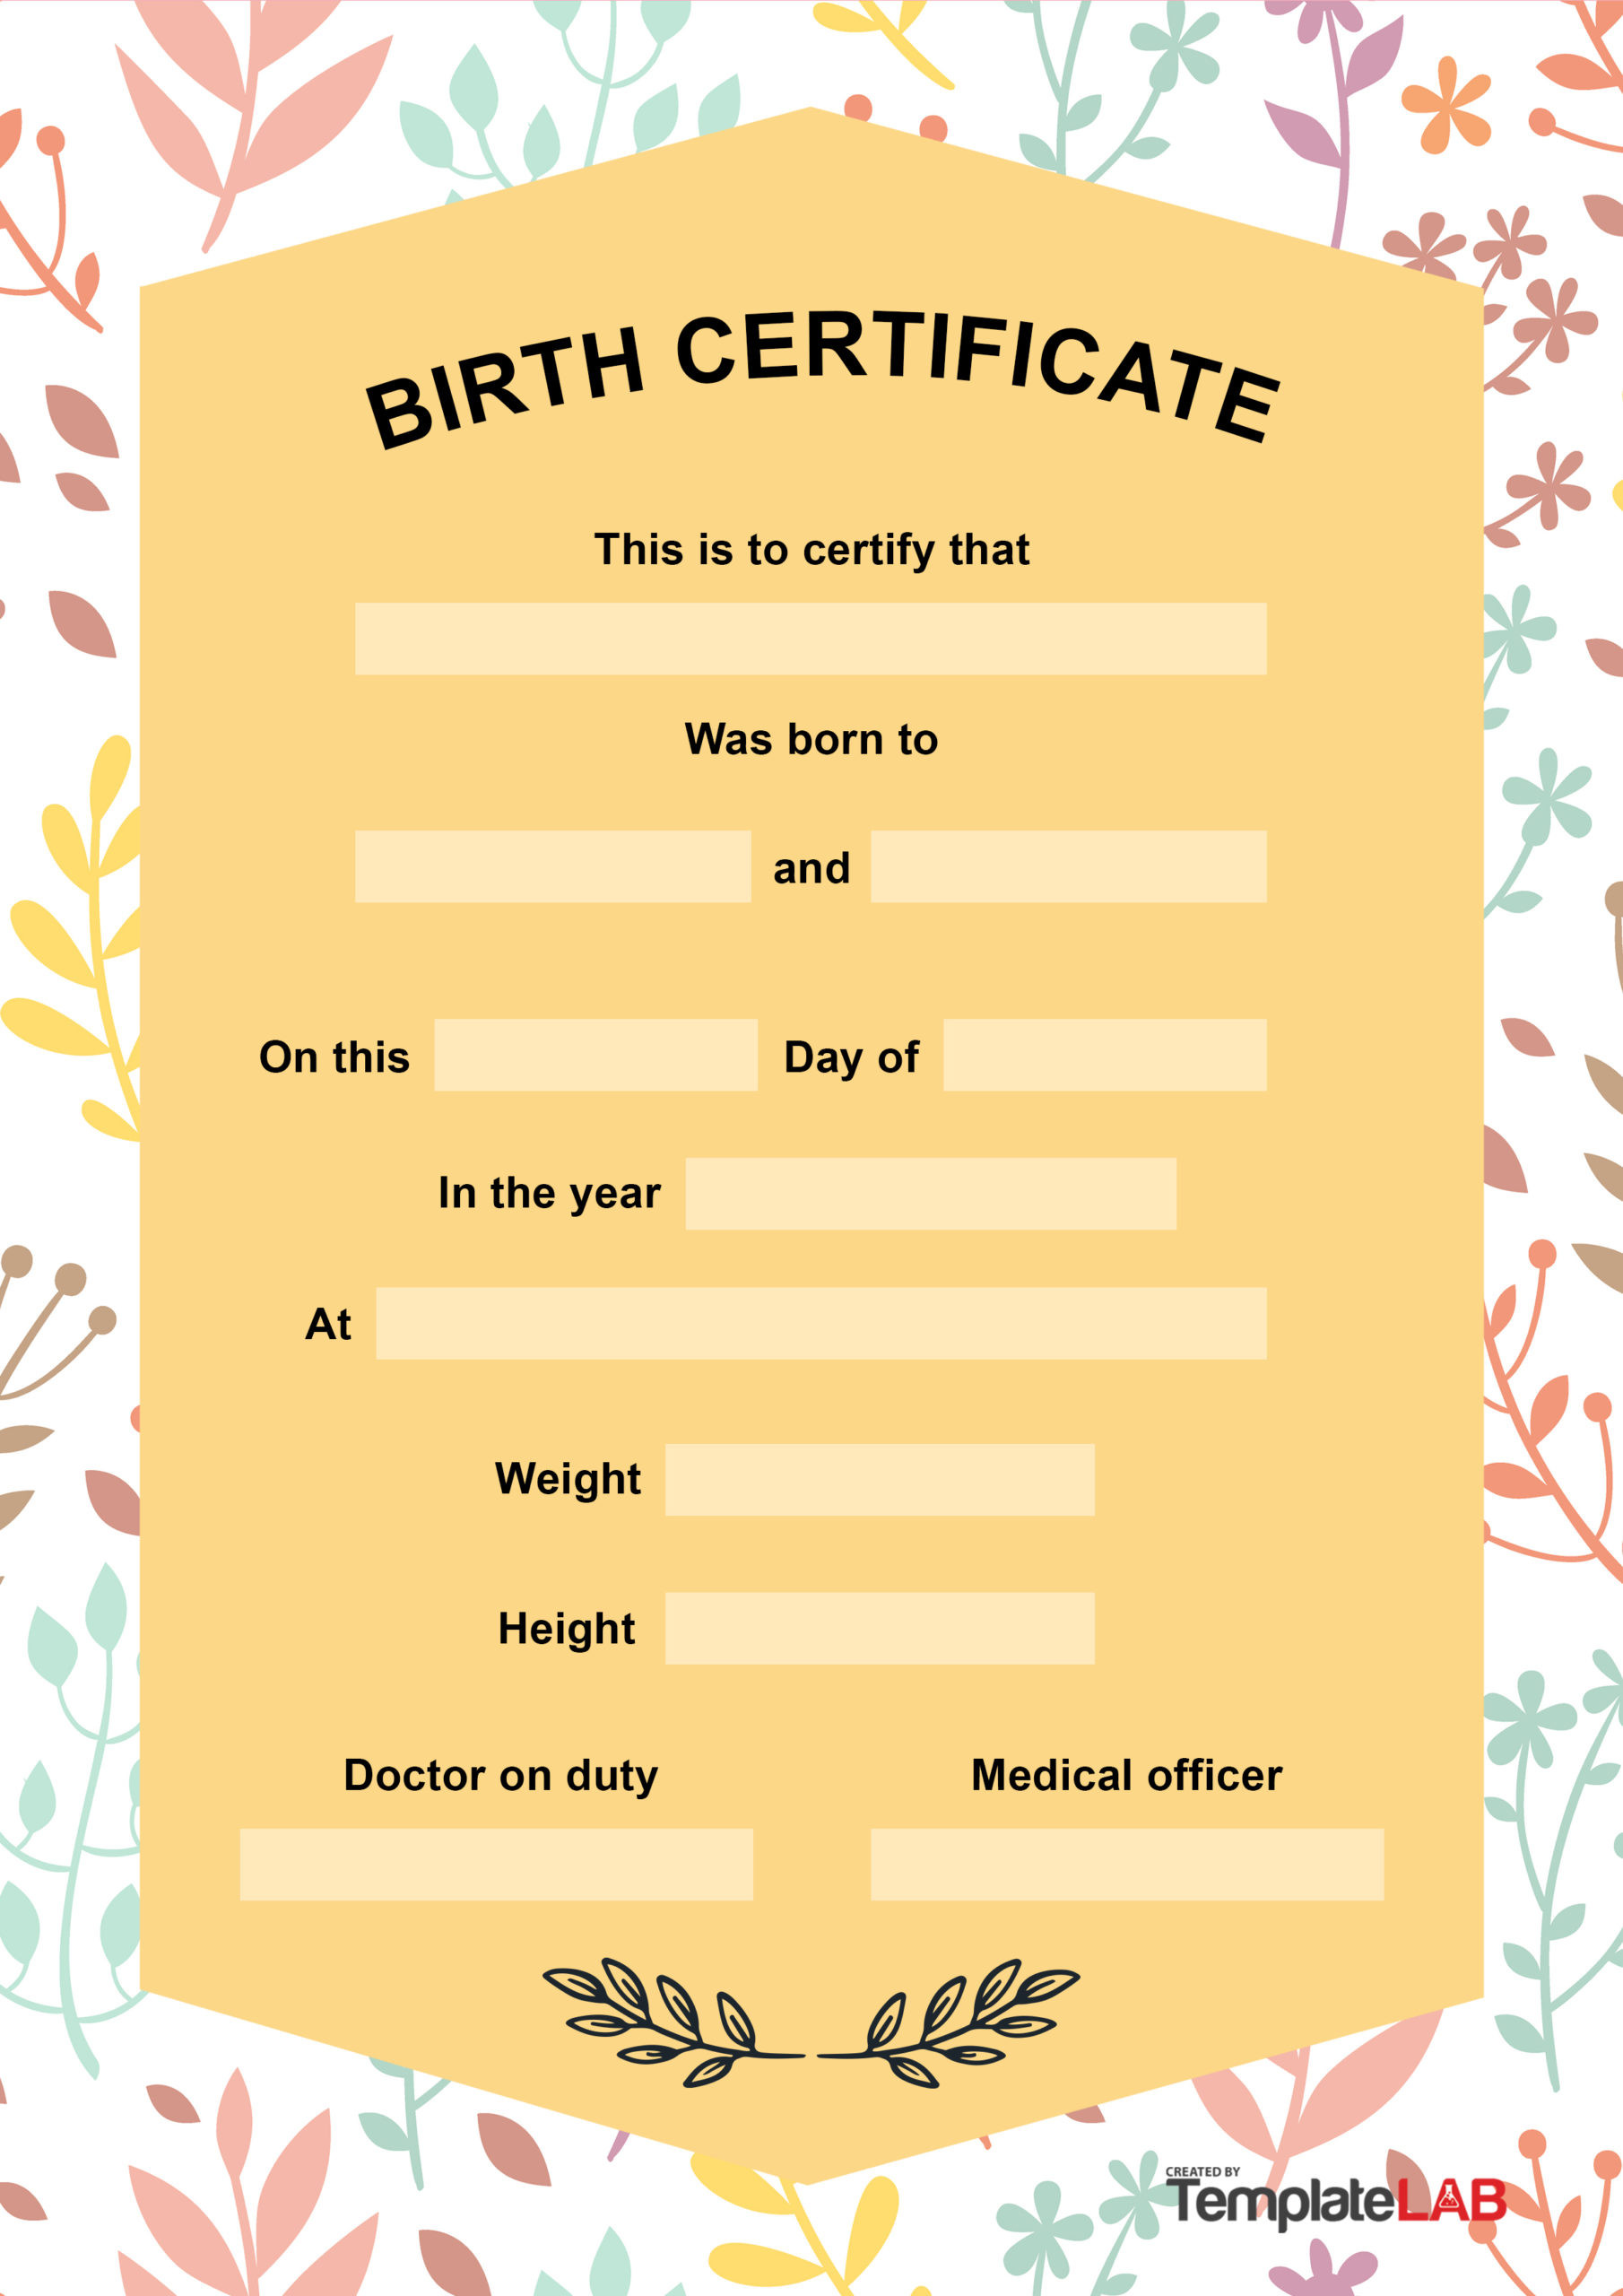 Official Birth Certificate Template